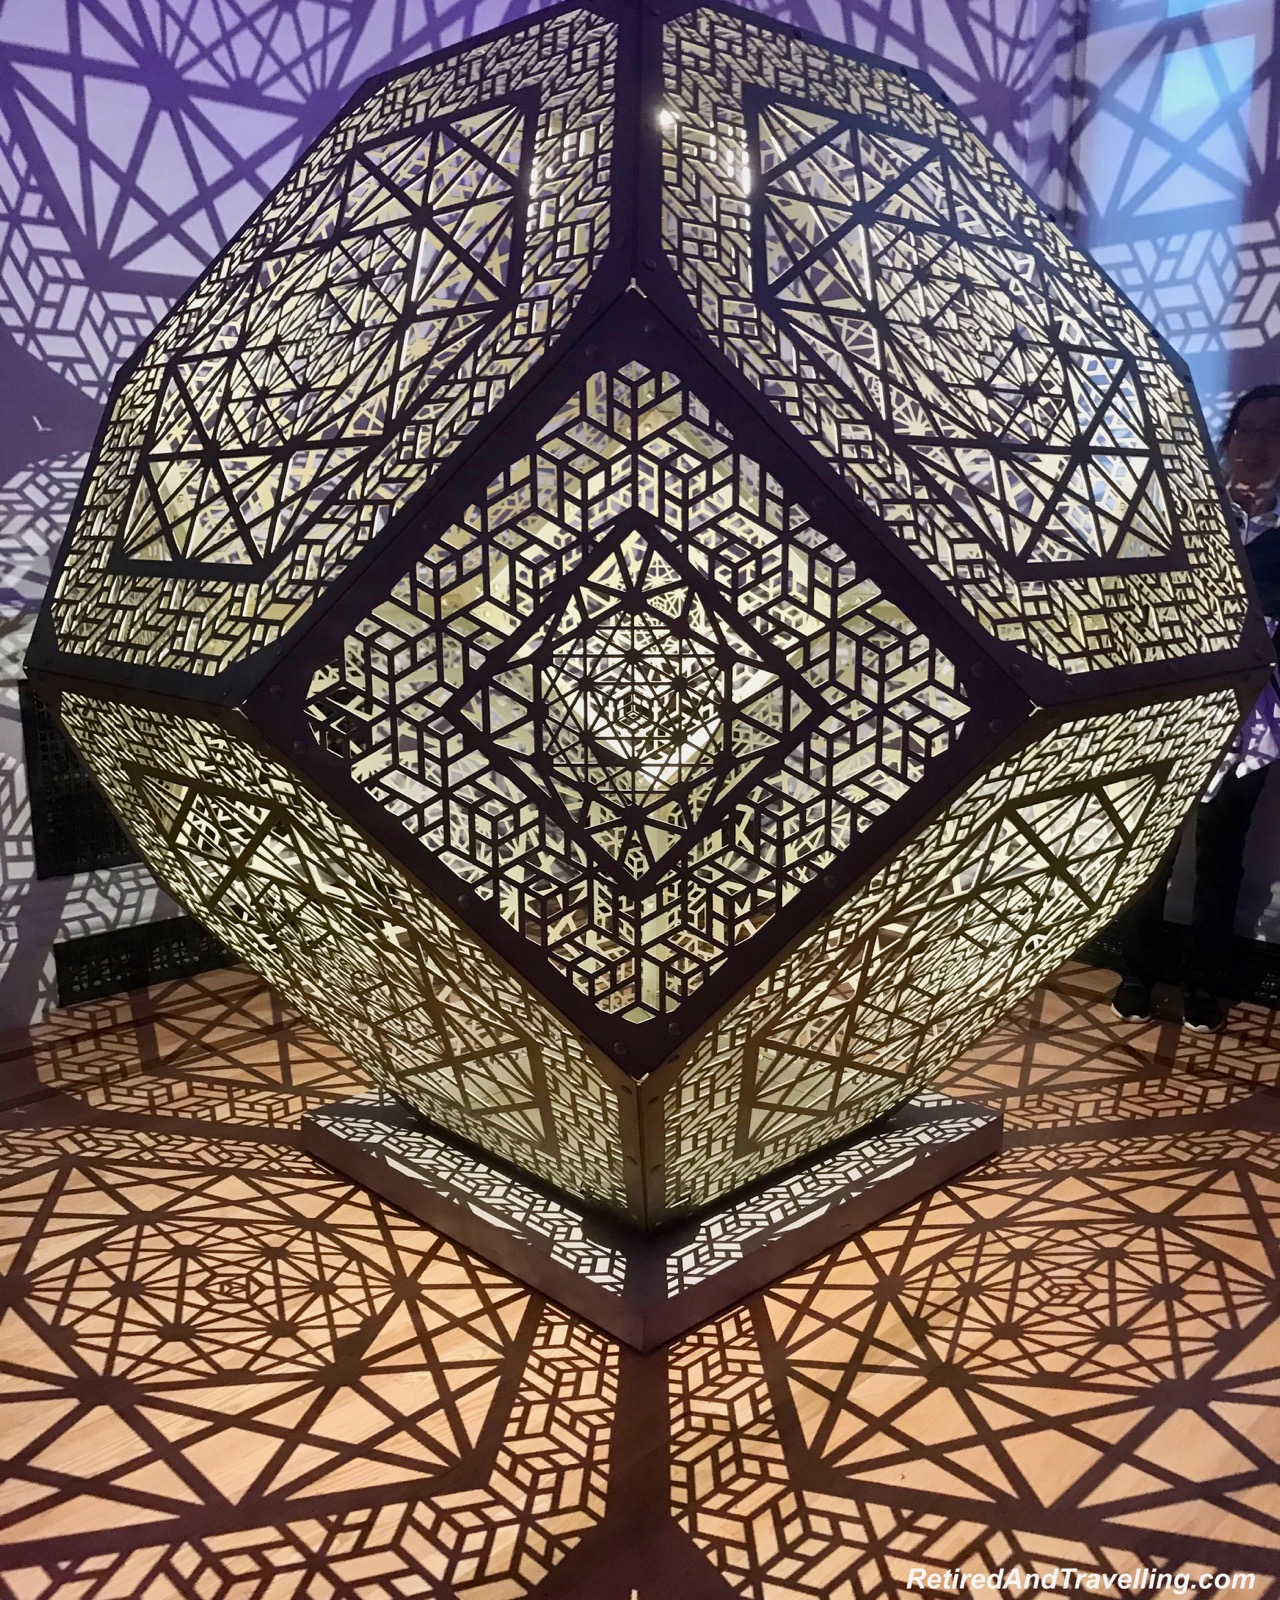 Lattice Art Work - Experience Burning Man In Washington Renwick Gallery.jpg